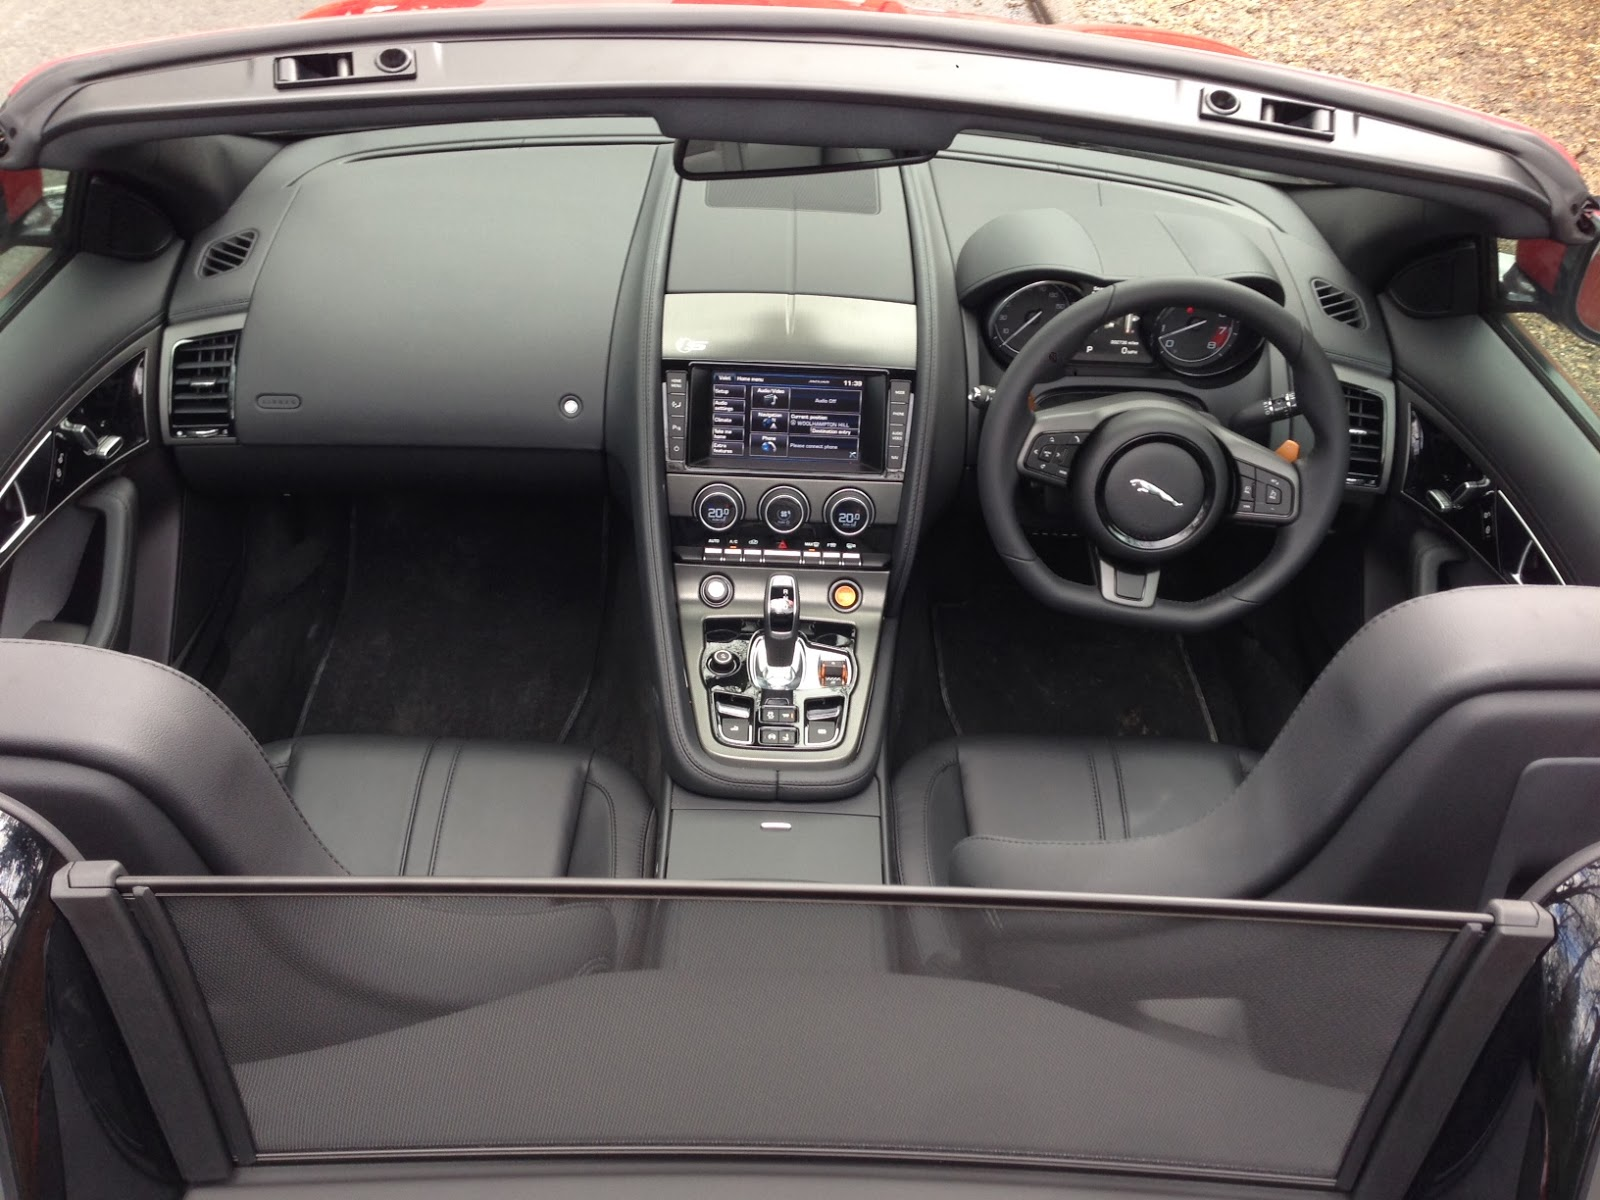 2014 Jaguar F-Type V8 S Convertible interior